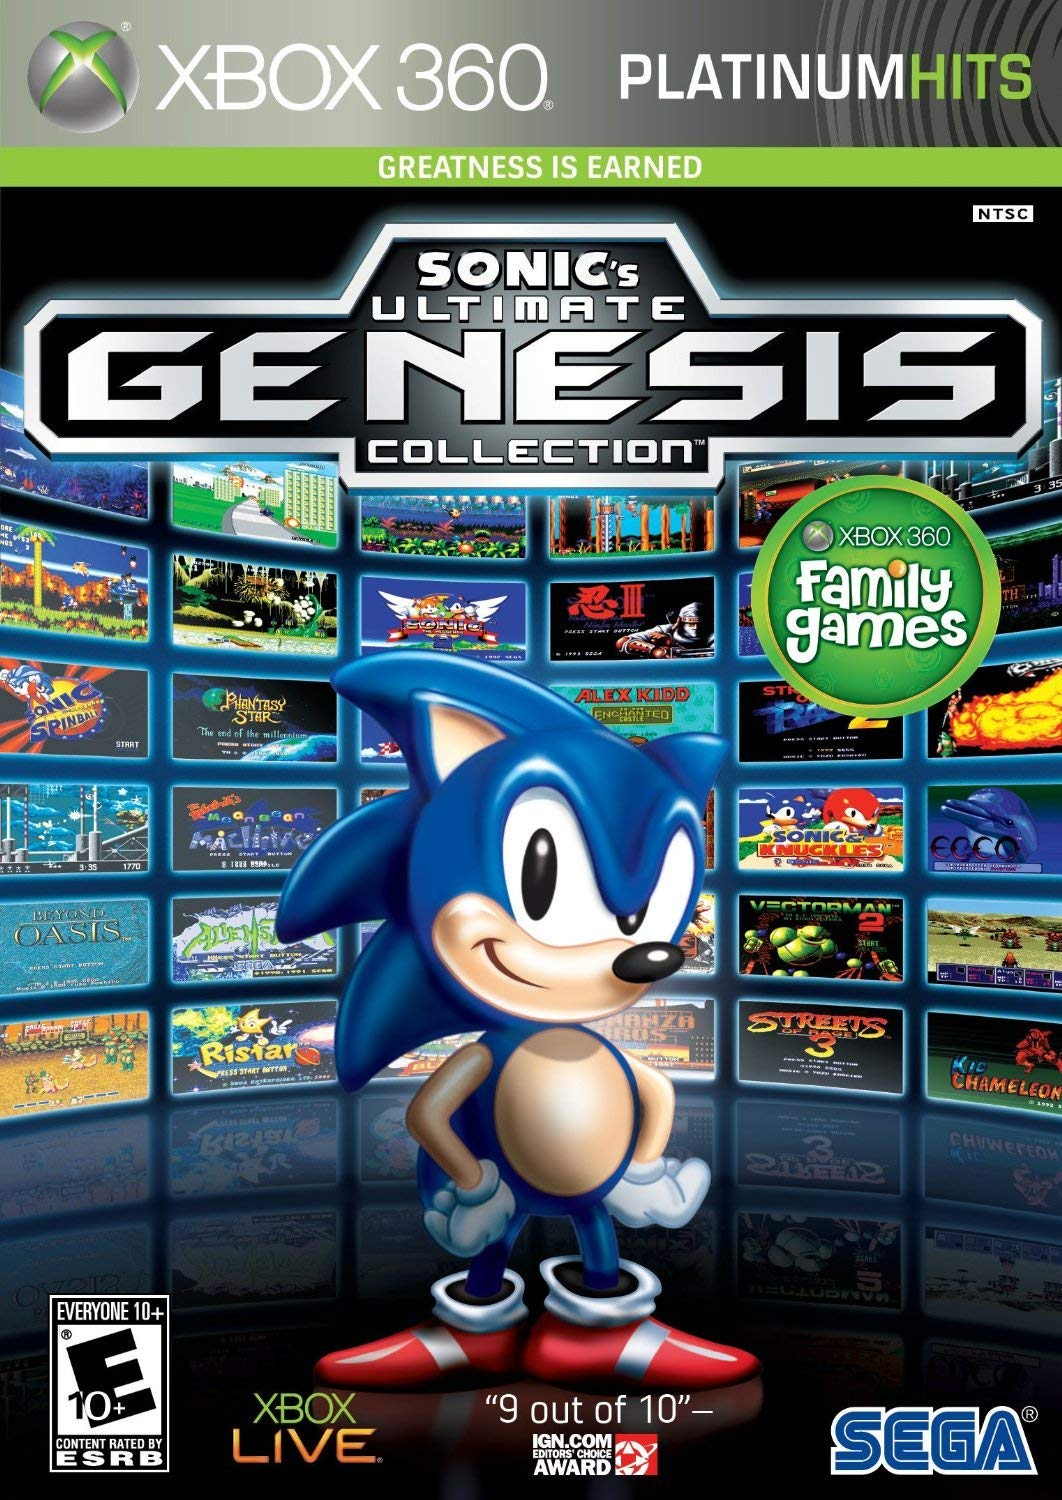 Sonic's Ultimate Genesis Collection (Platinum Hits) - Xbox 360 (Renewed)